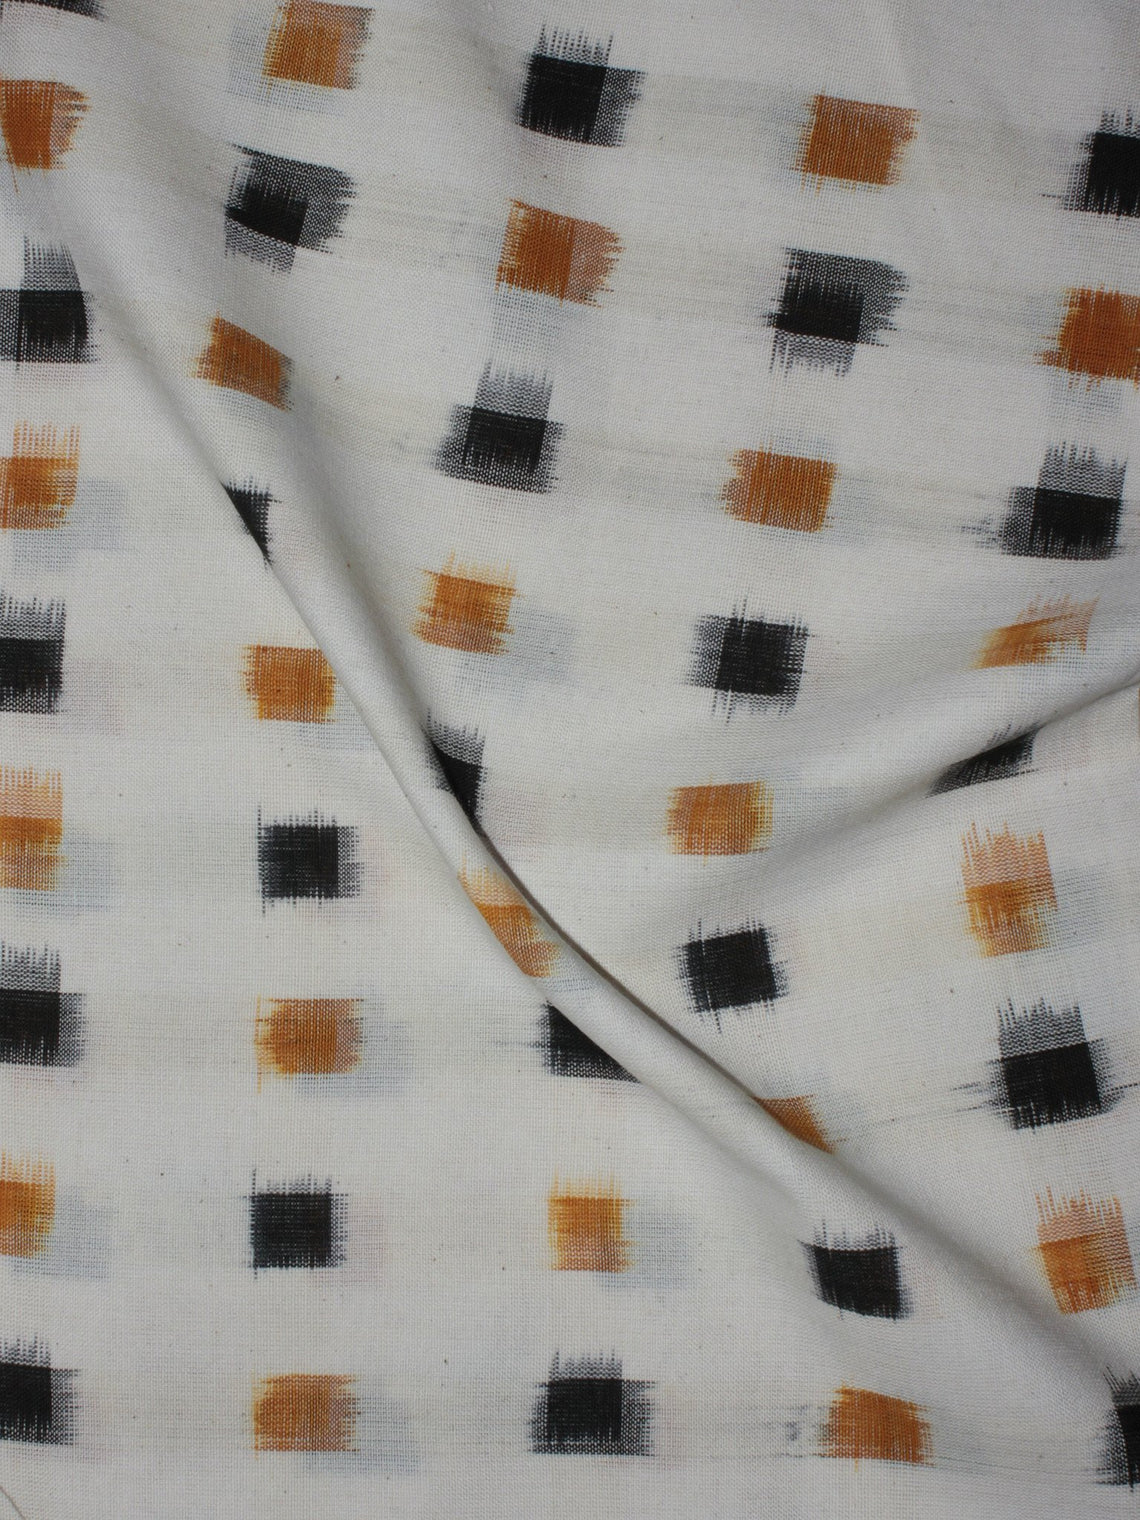 Ivory Golden Yellow Black Pochampally Hand Weaved Double Ikat Fabric Per Meter - F091F764